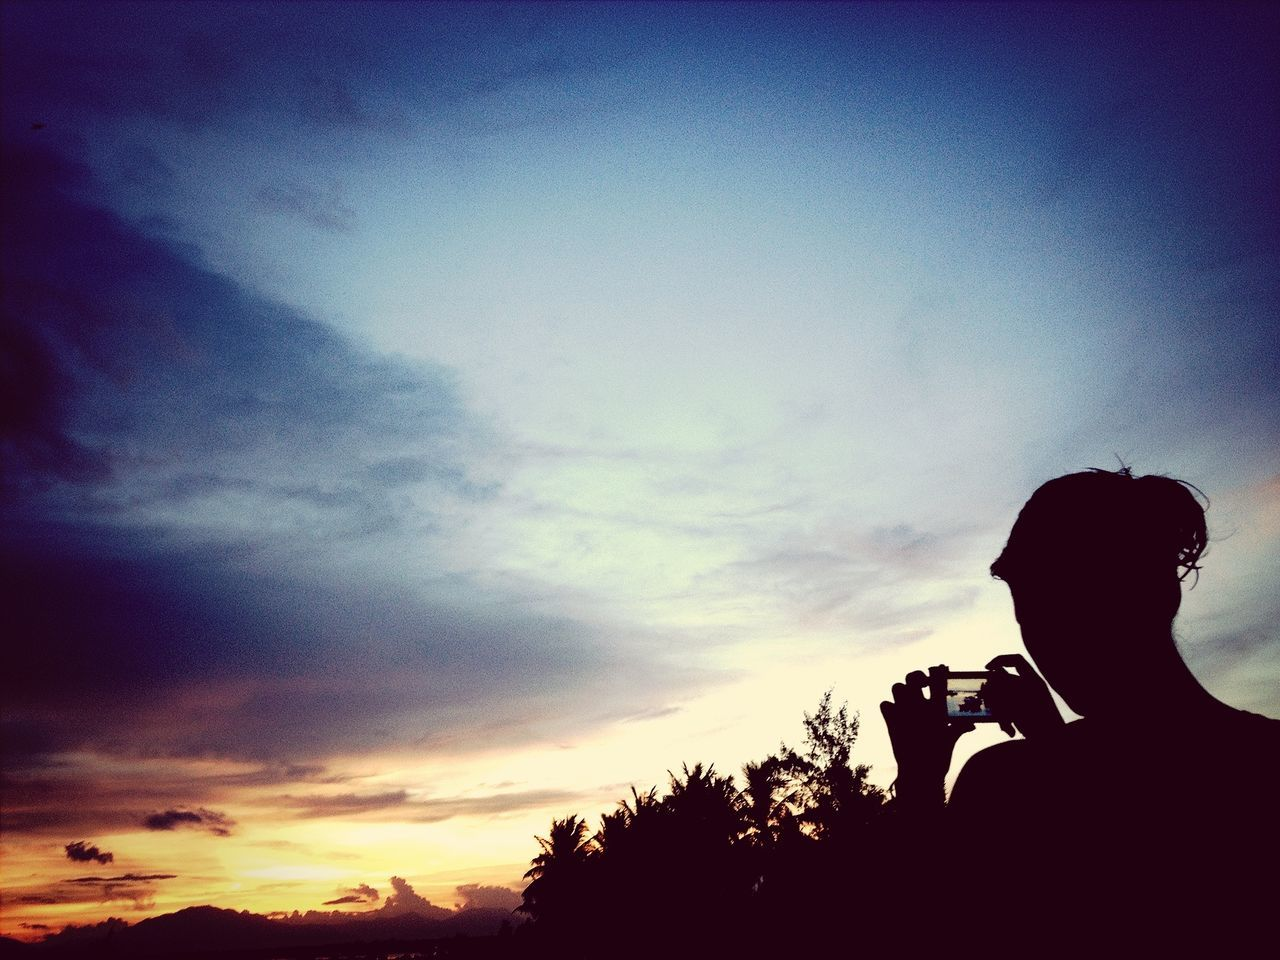 Silhouette person photographing landscape at sunset